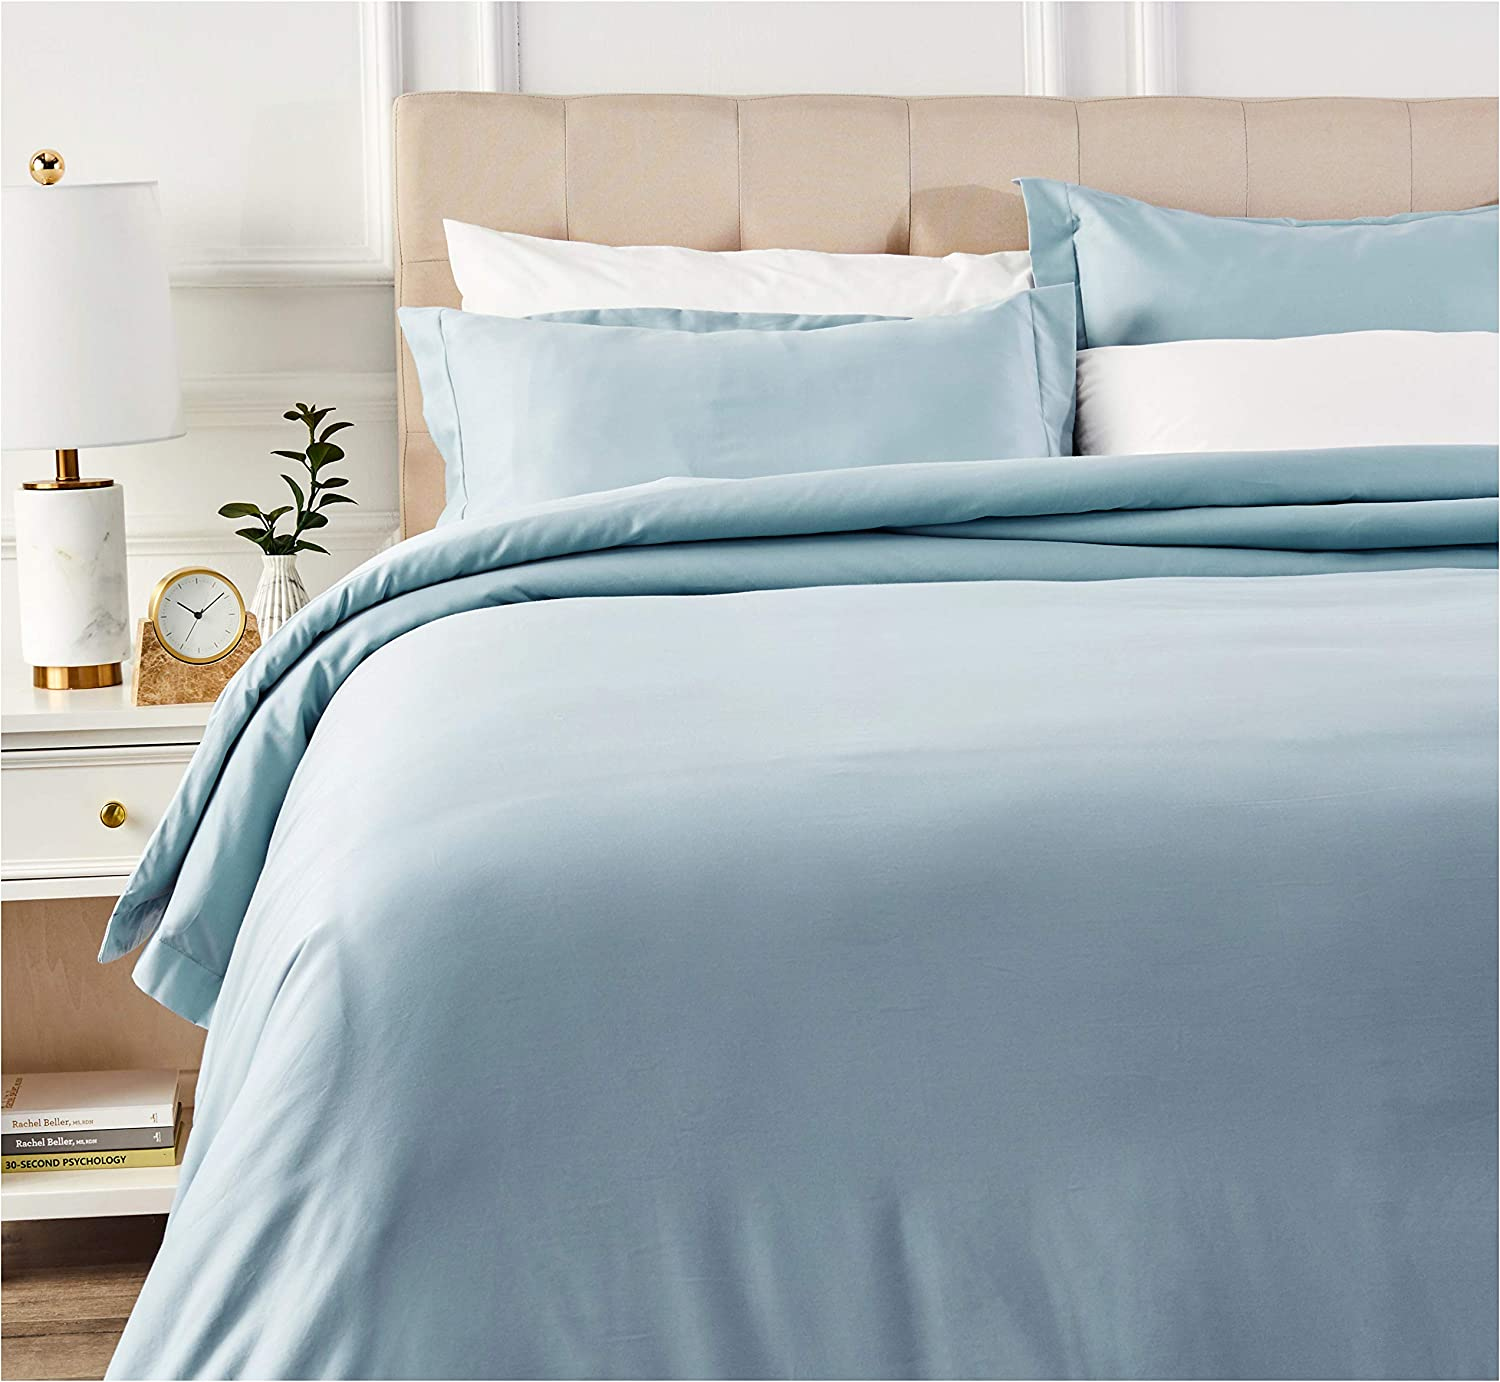 AmazonBasics 400 Thread Count Cotton Duvet Cover Bed Set with Sateen Finish - King, Smoke Blue